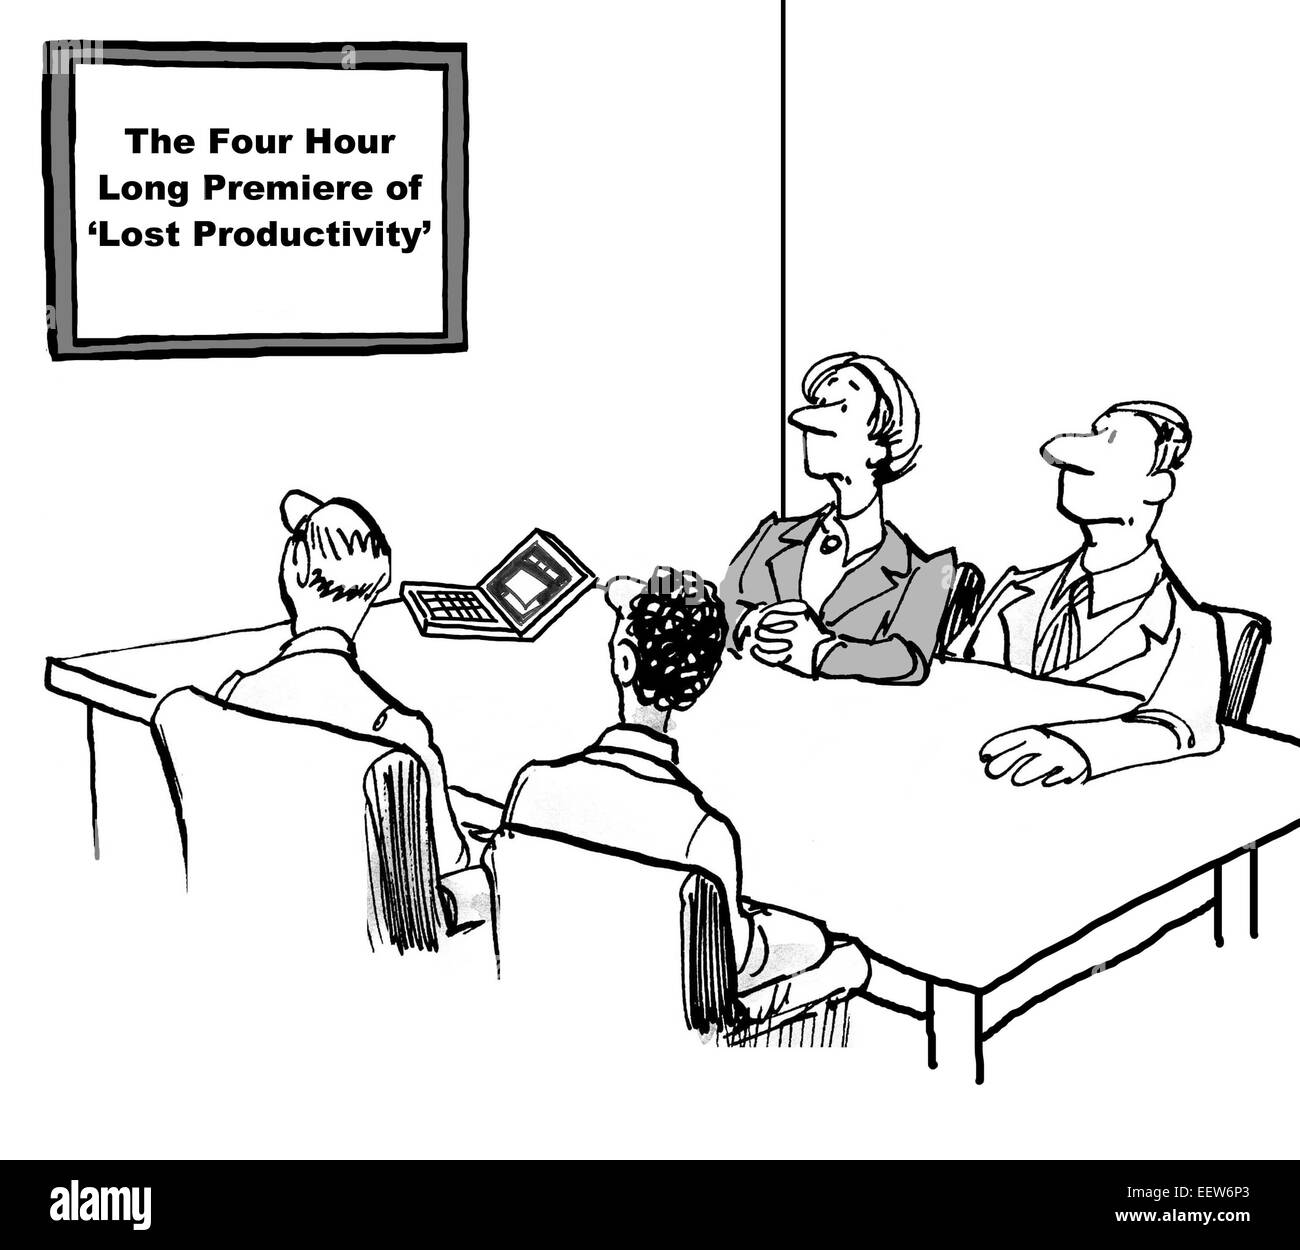 Cartoon Showing Business People In A Meeting With Sign That Says ...